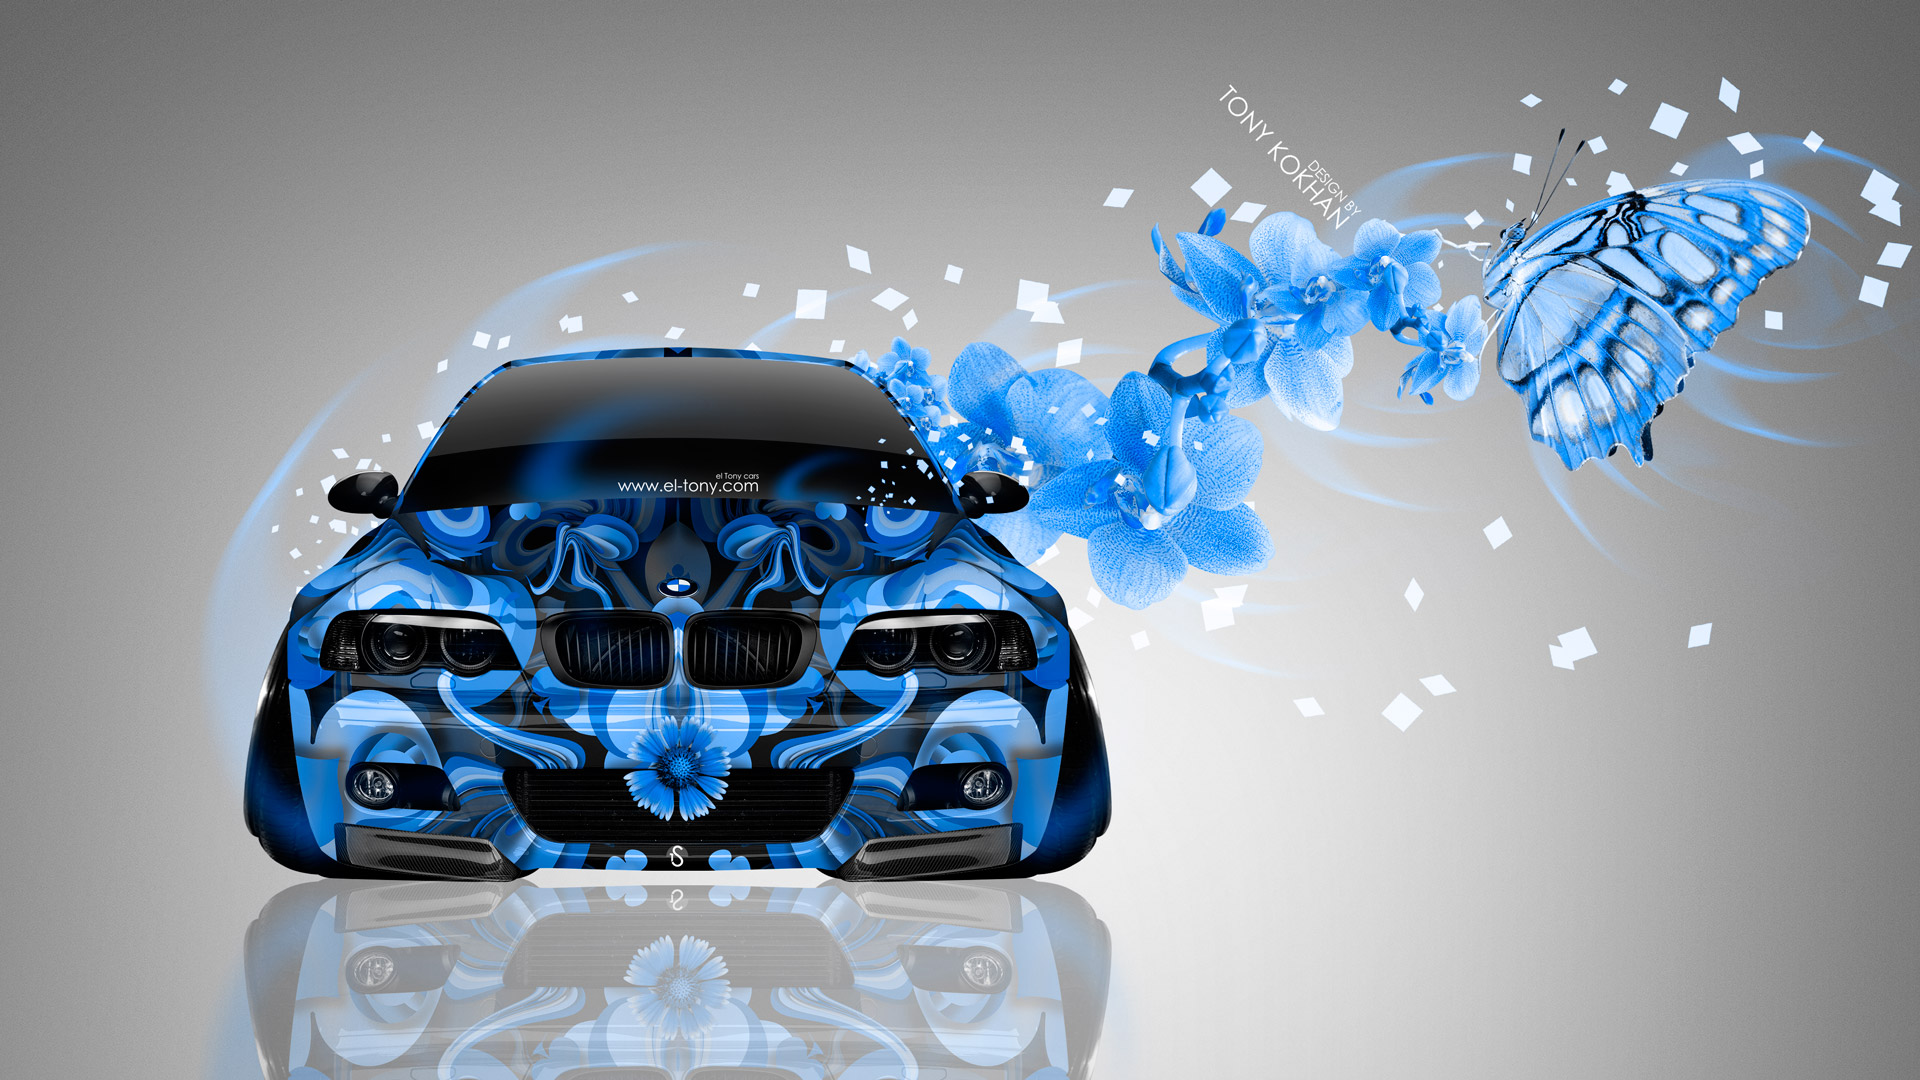 Fire And Water Hd Wallpapers Bmw M3 E46 Front Fantasy Flowers Butterfly Car 2014 El Tony